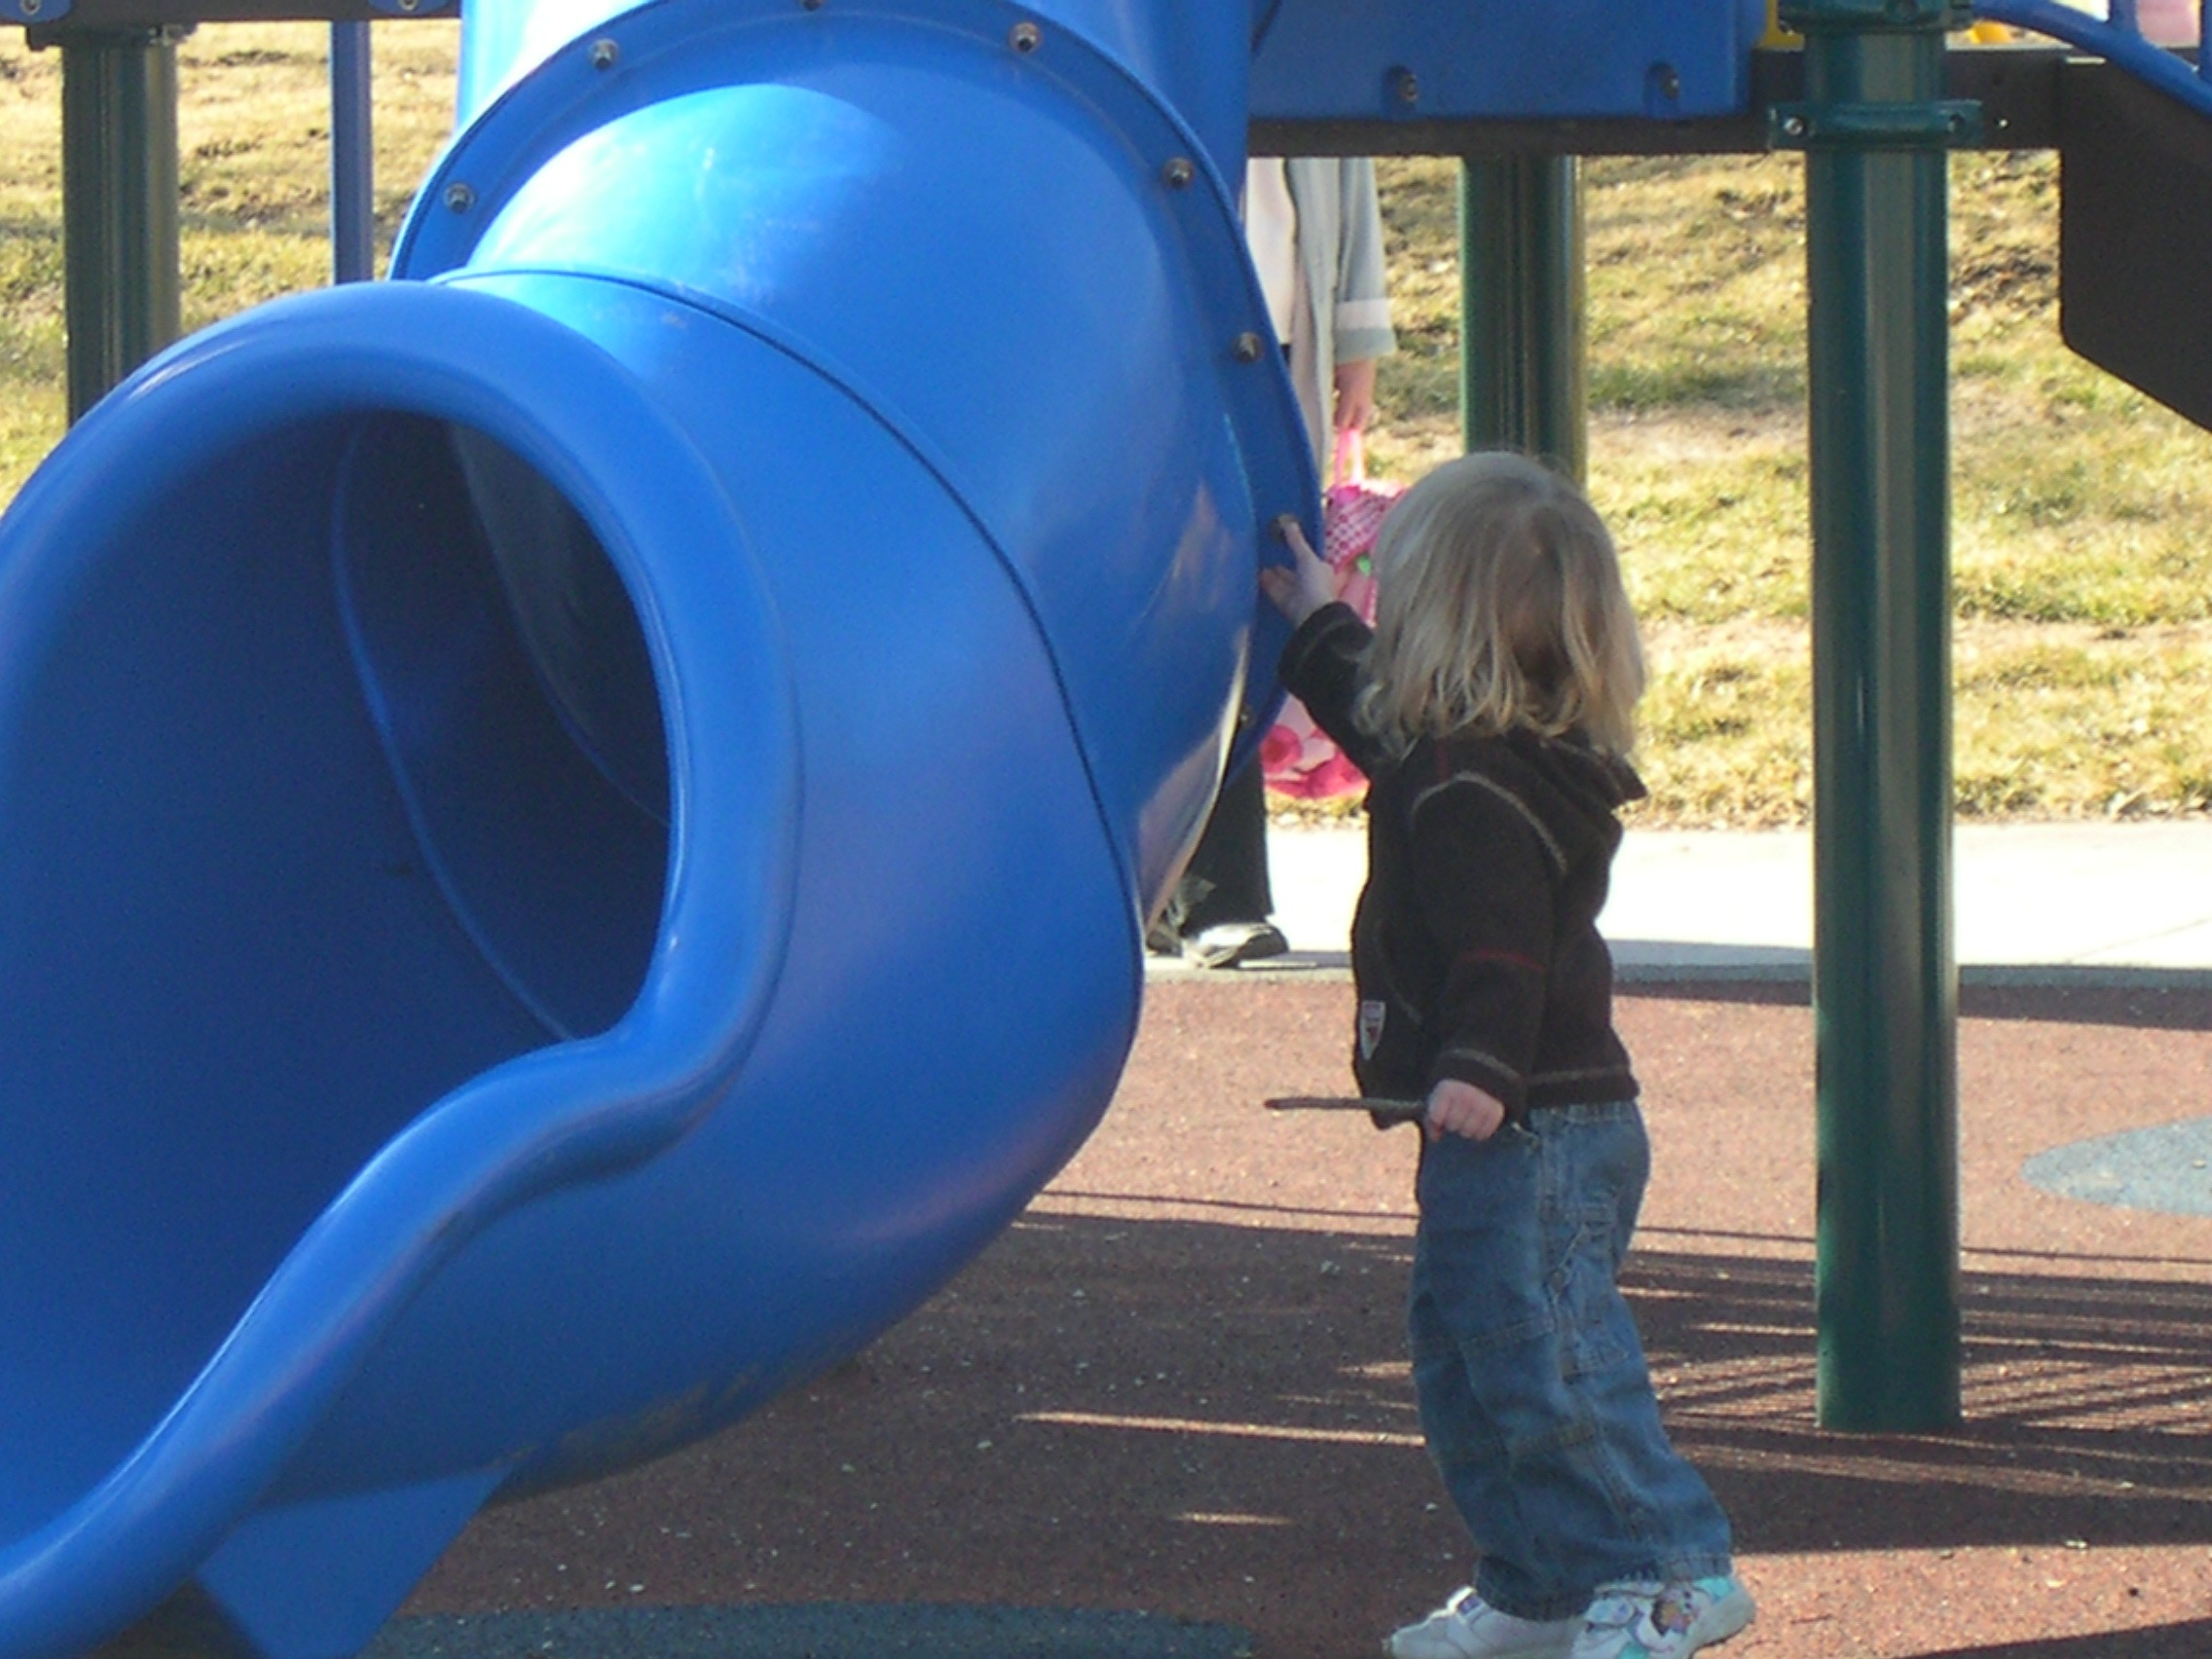 Child Playing on Rubber Playground Surface